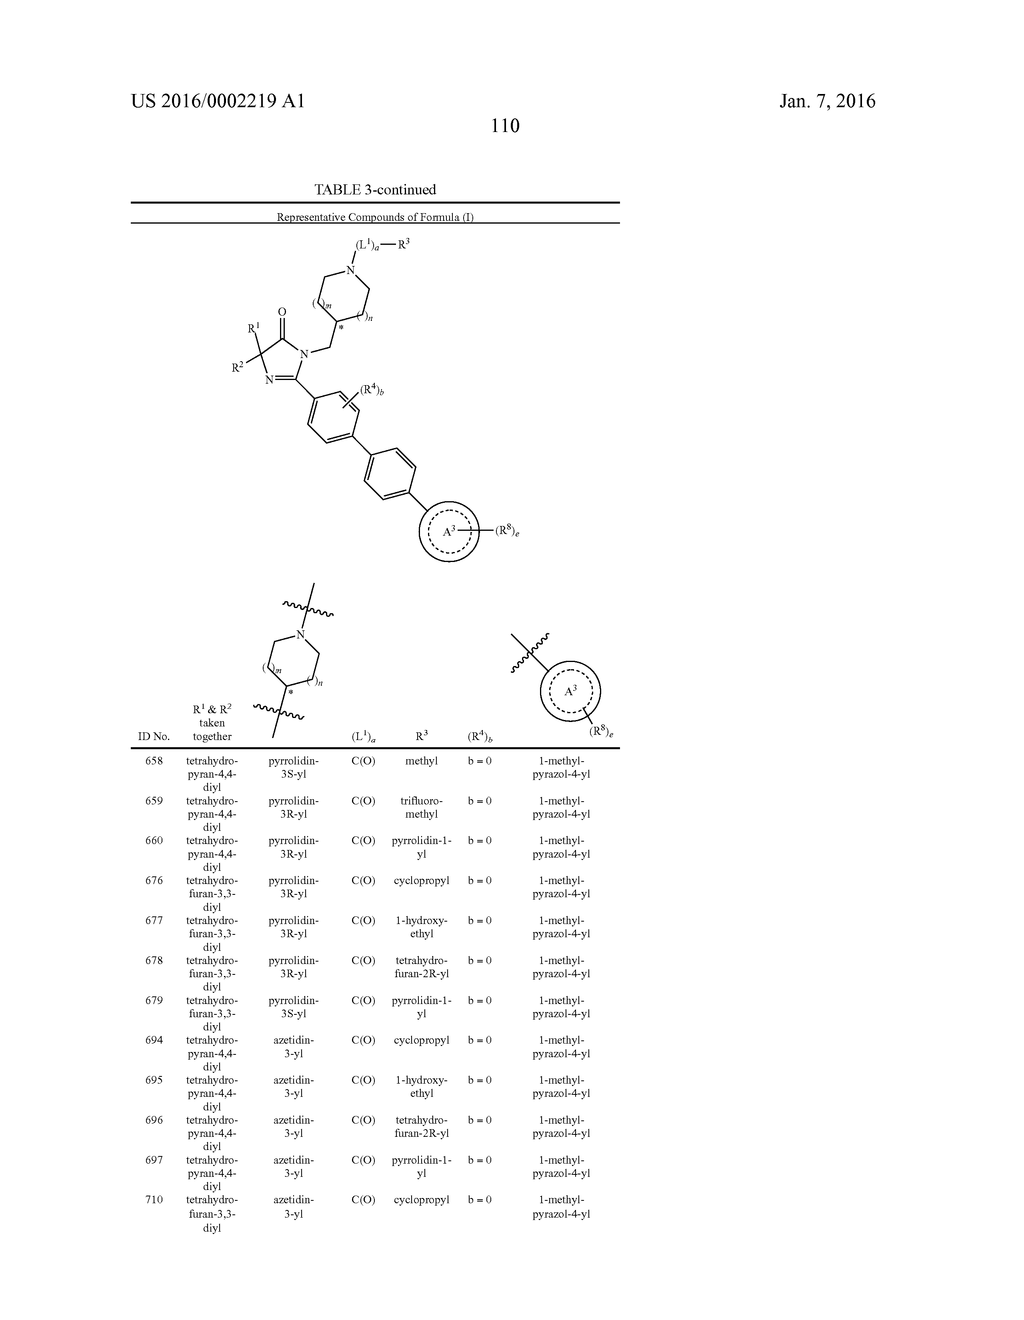 IMIDAZOLIN-5-ONE DERIVATIVE USEFUL AS FASN INHIBITORS FOR THE TREATMENT OF     CANCER - diagram, schematic, and image 111